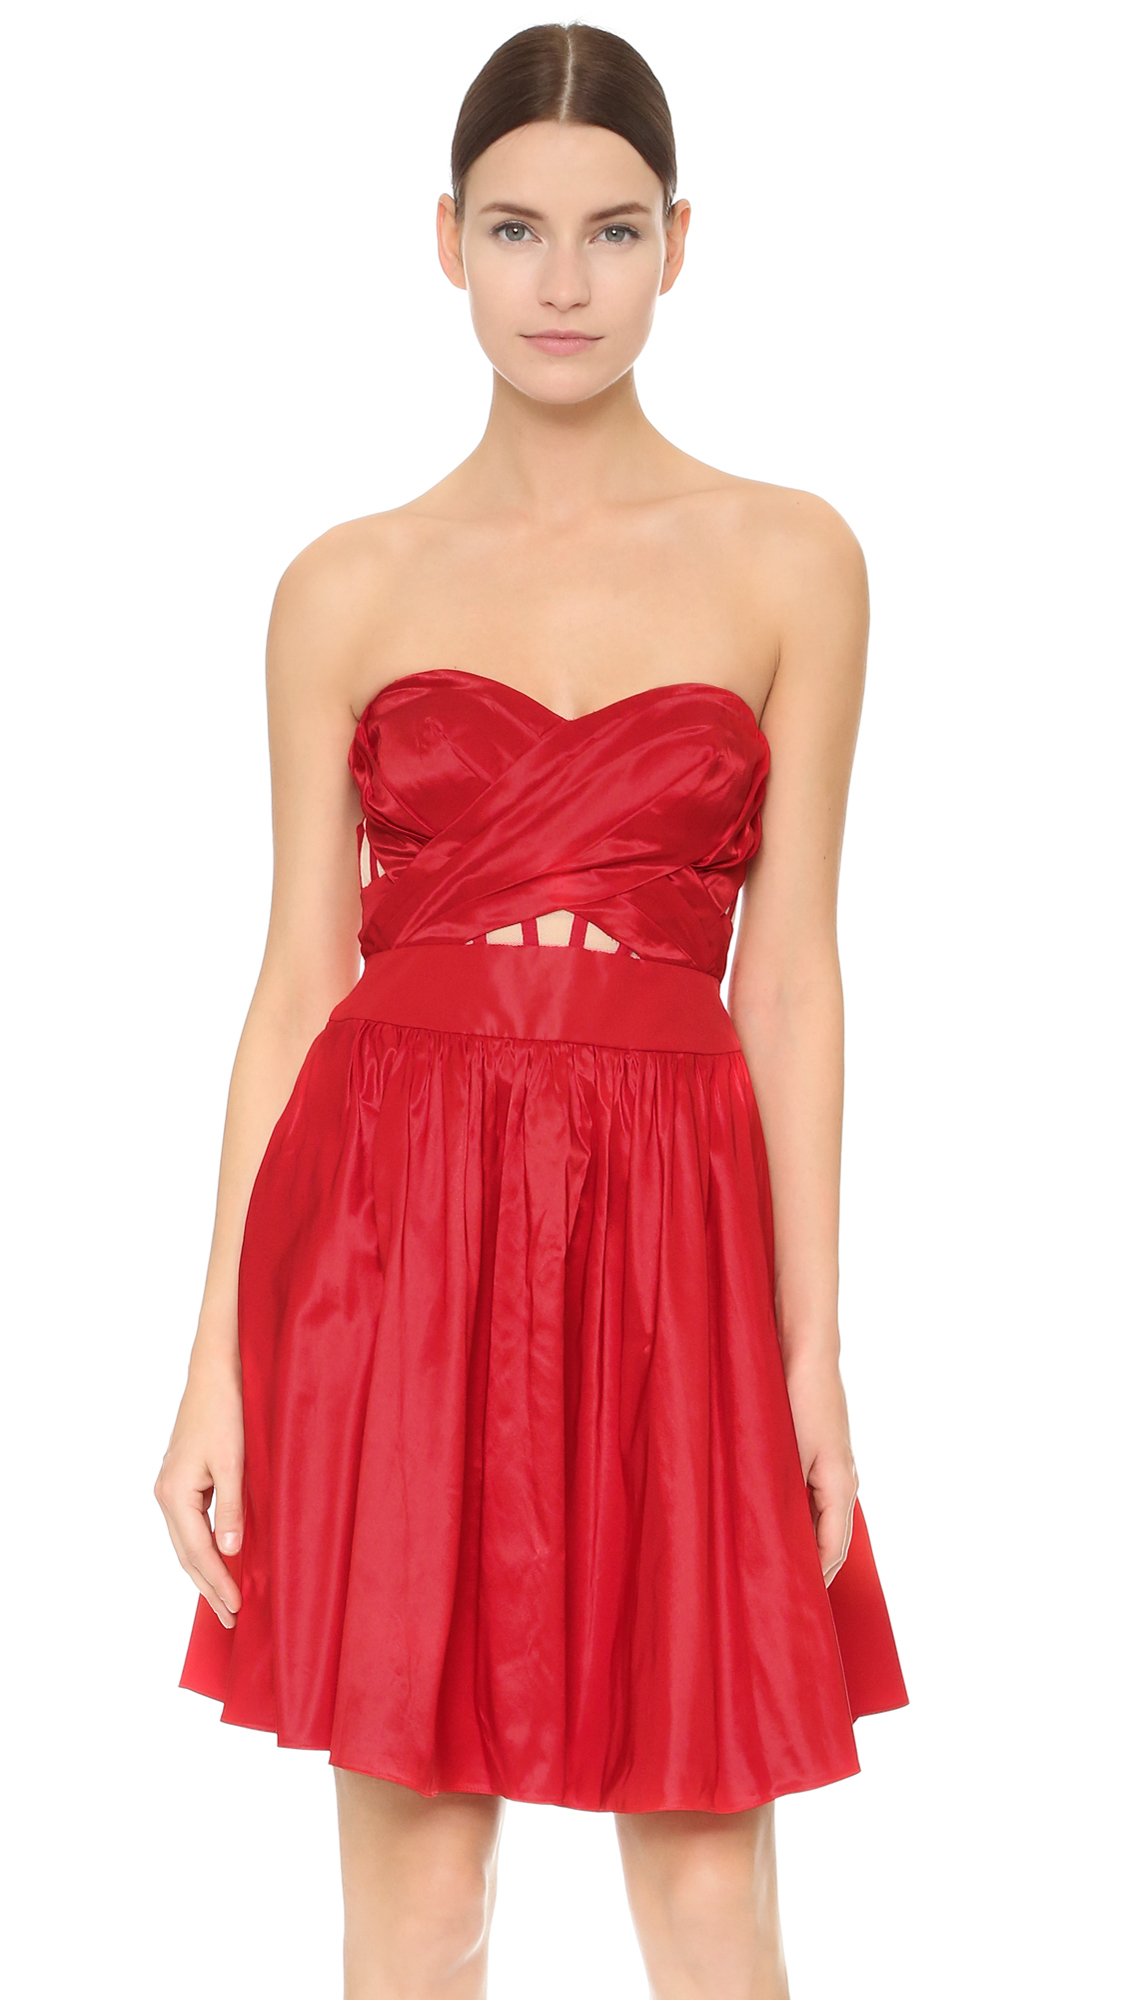 Notte by marchesa Strapless Cocktail Dress in Red - Lyst